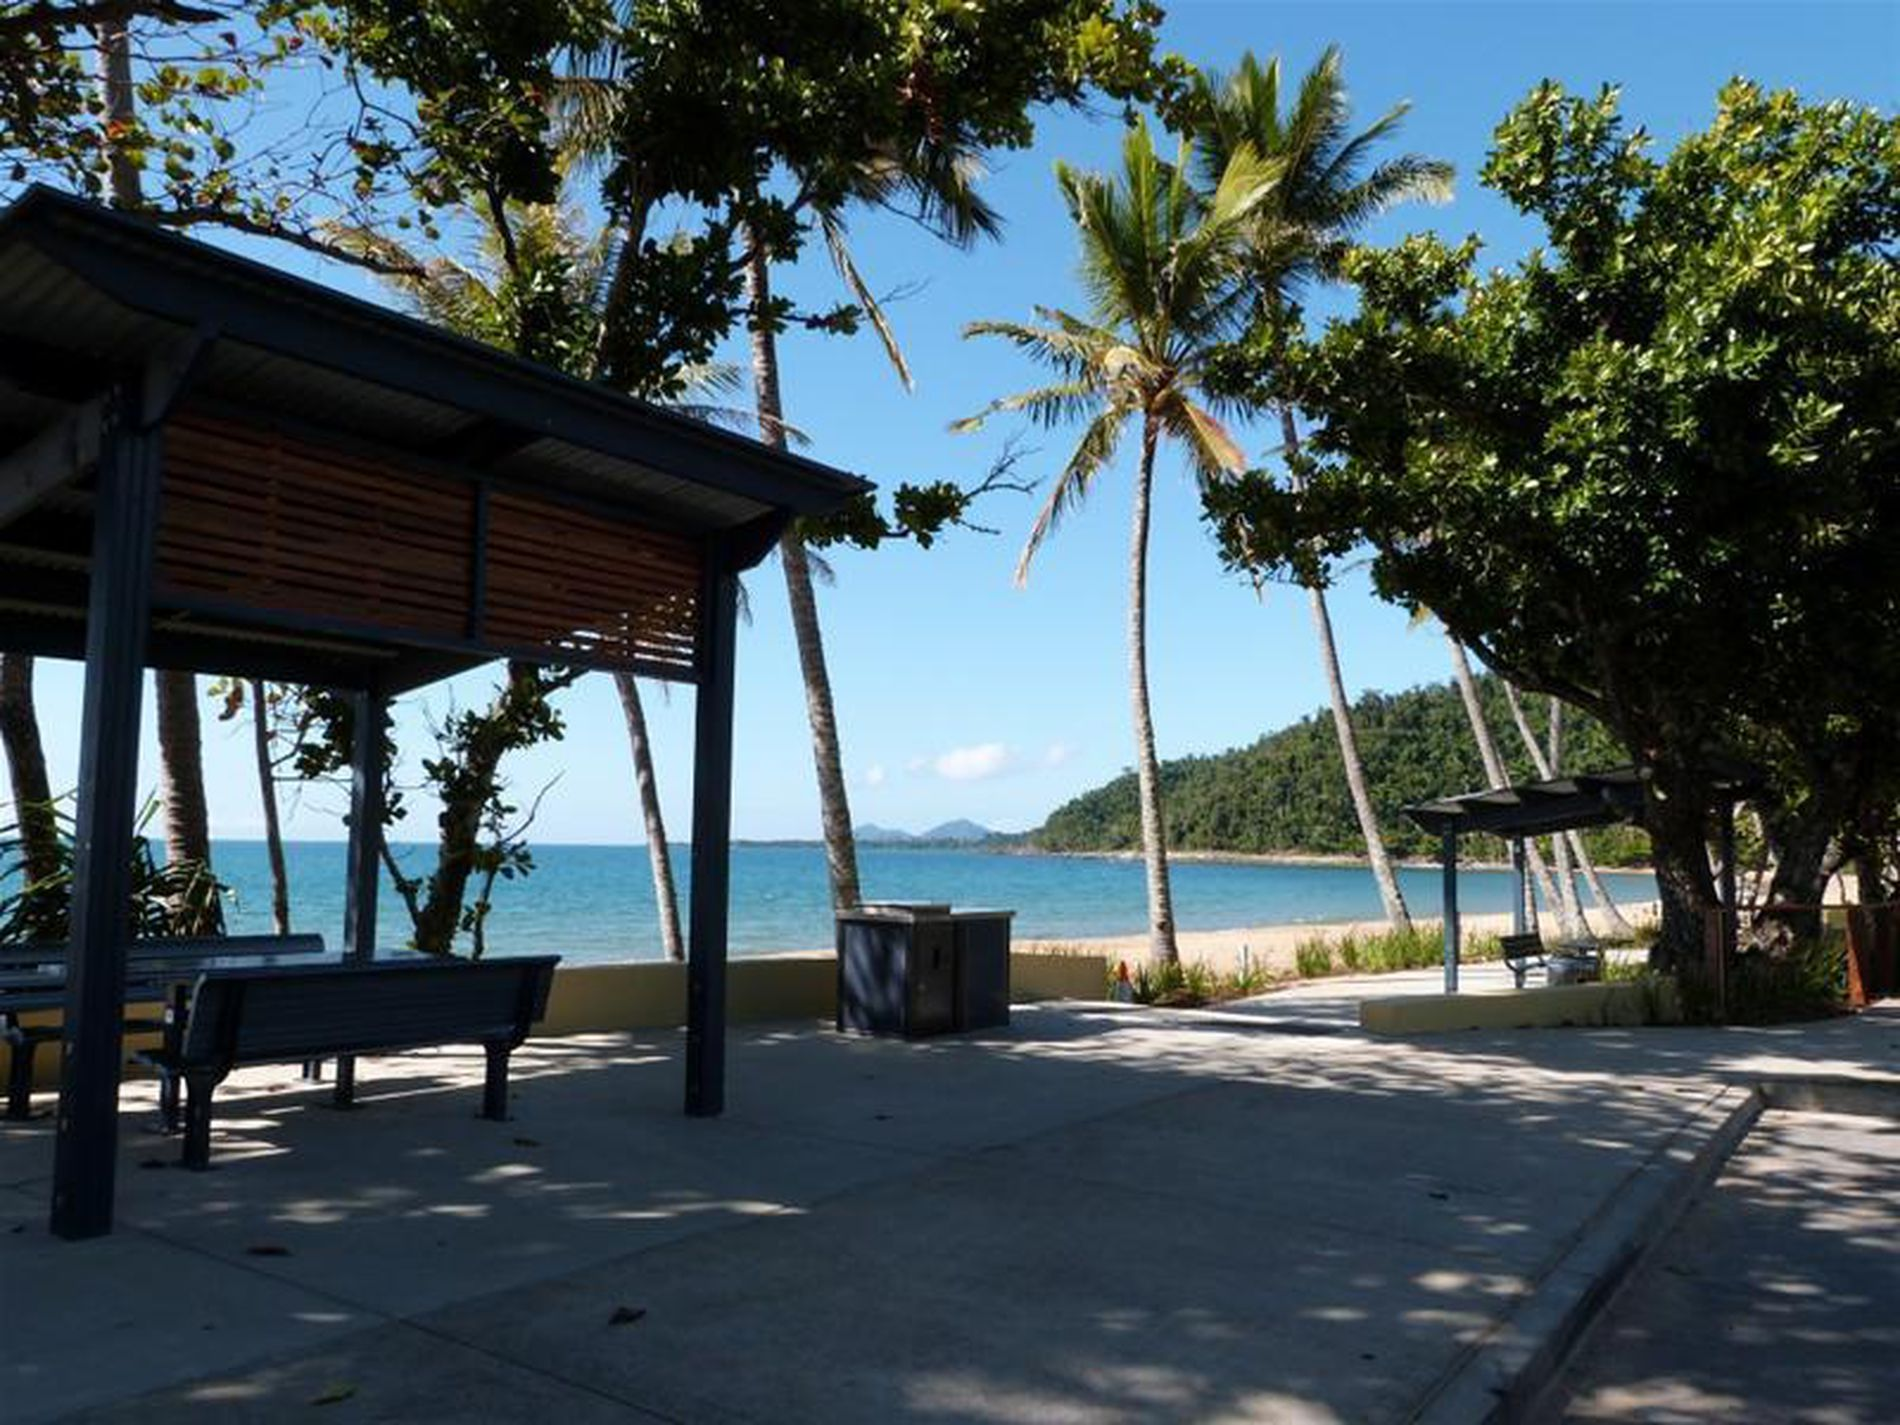 Lot 5, 5 Bingil Bay Road, Bingil Bay